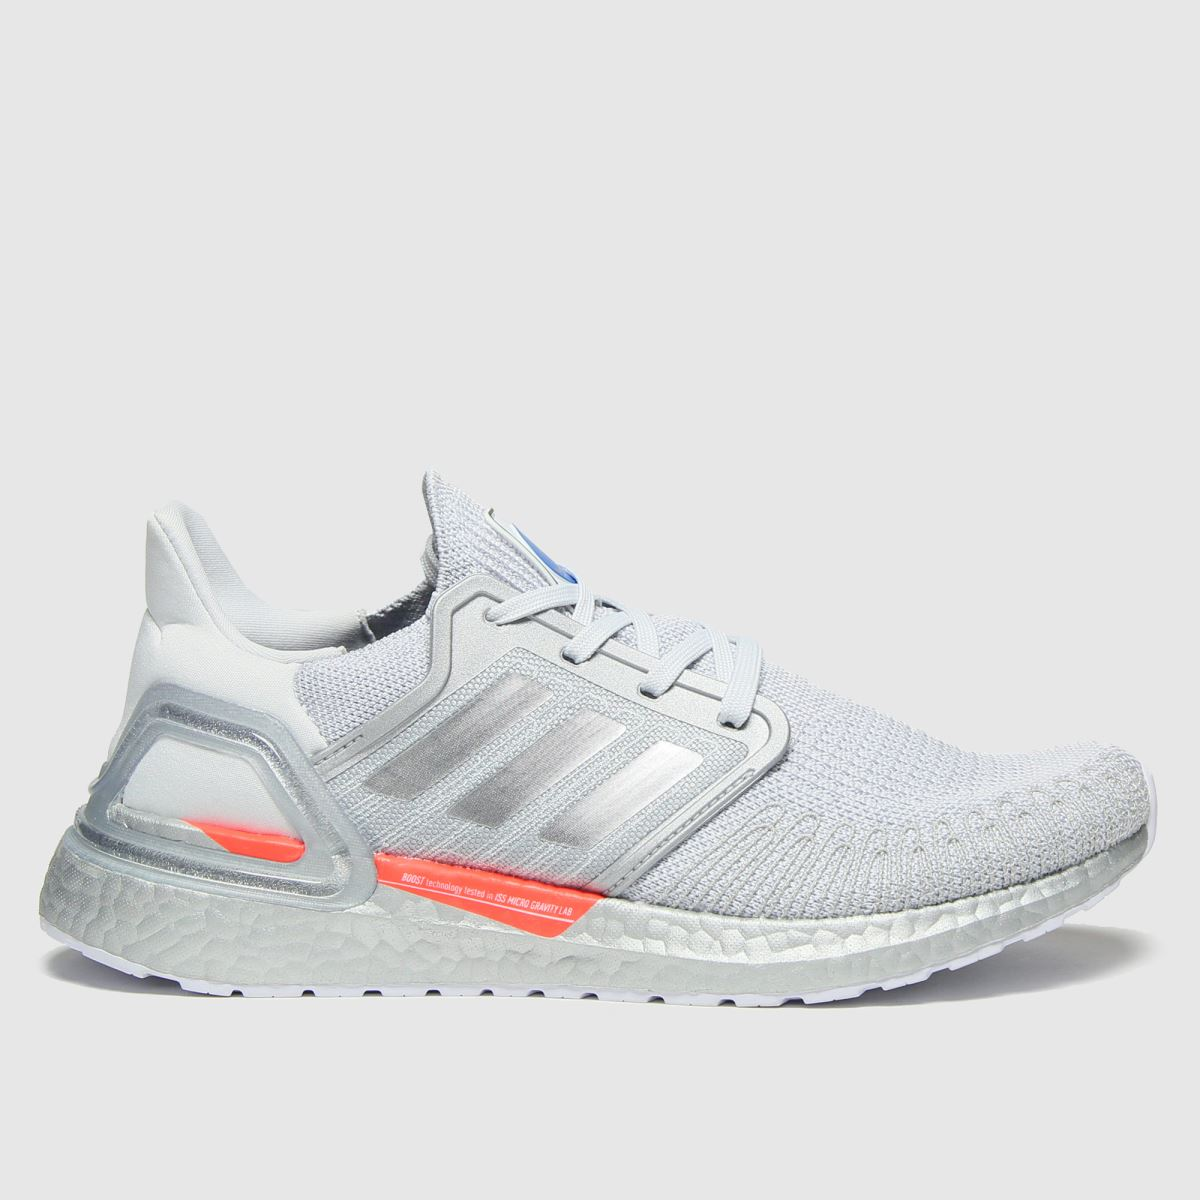 Adidas White Ultraboost 20 Trainers